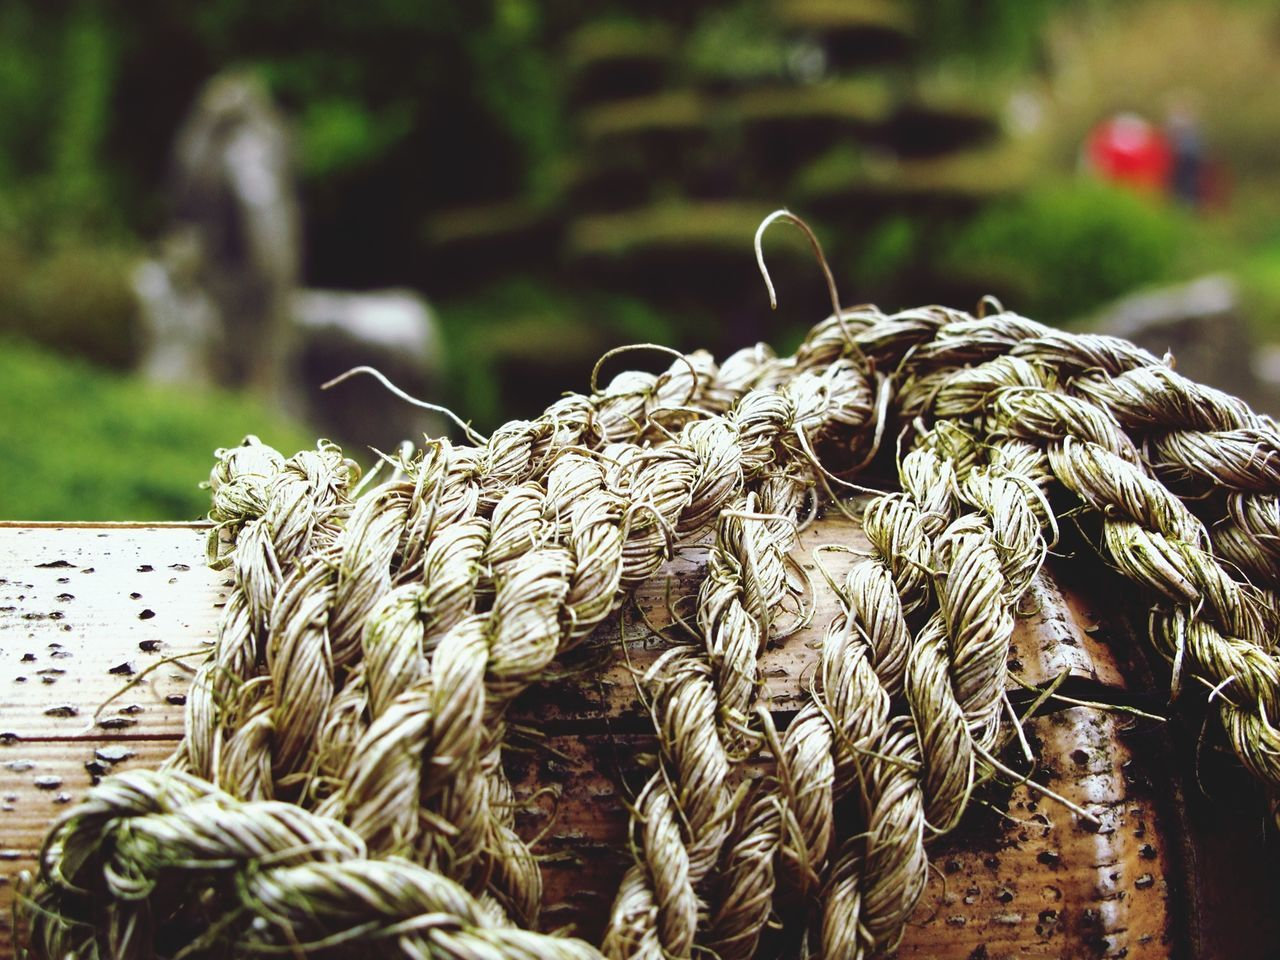 Tied up Tied Together Knot Knotted Bamboo Sisal Rope Focus On Foreground Close-up Pattern, Texture, Shape And Form Canon Outdoors Nature Park Asian Garden